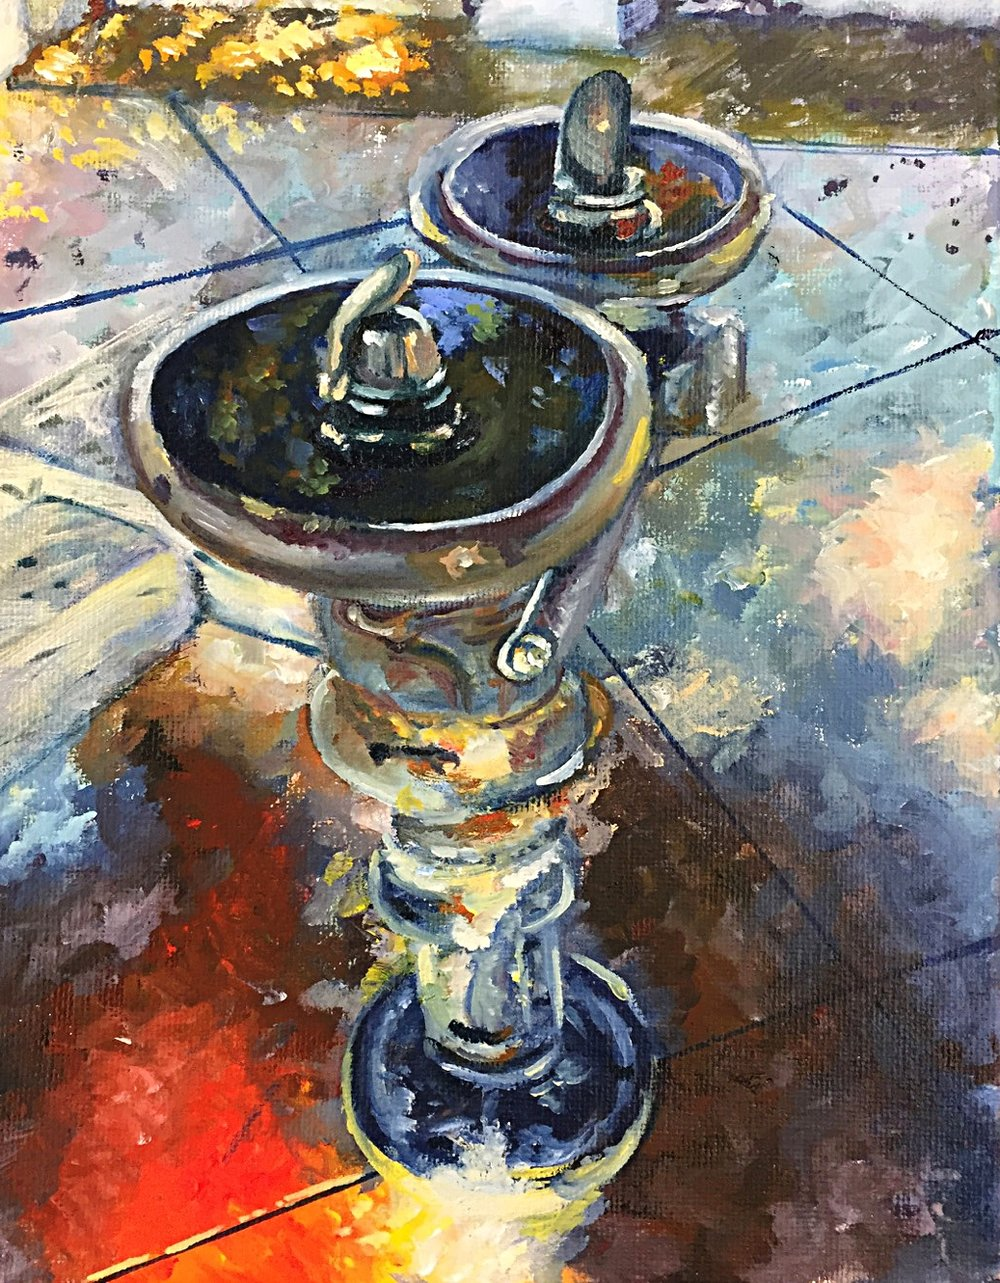 "FOUNTAIN, Oil on canvas, 8"" x 10"" inches, 2015"